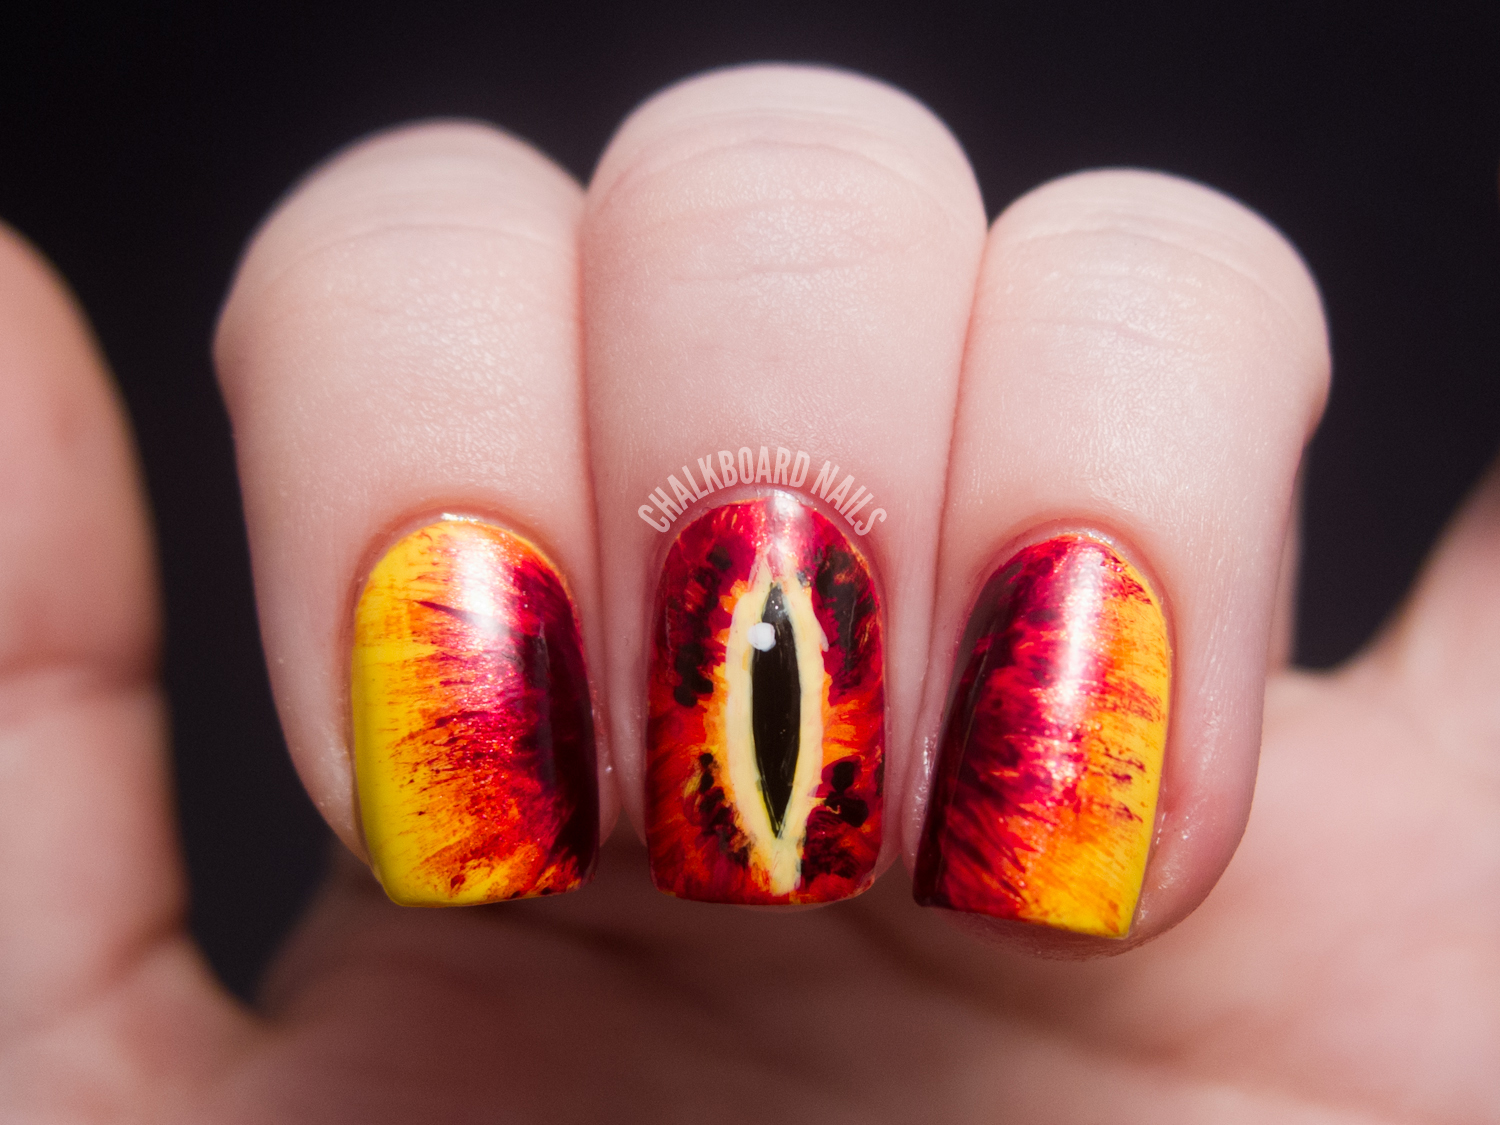 Nails !! Sauron1